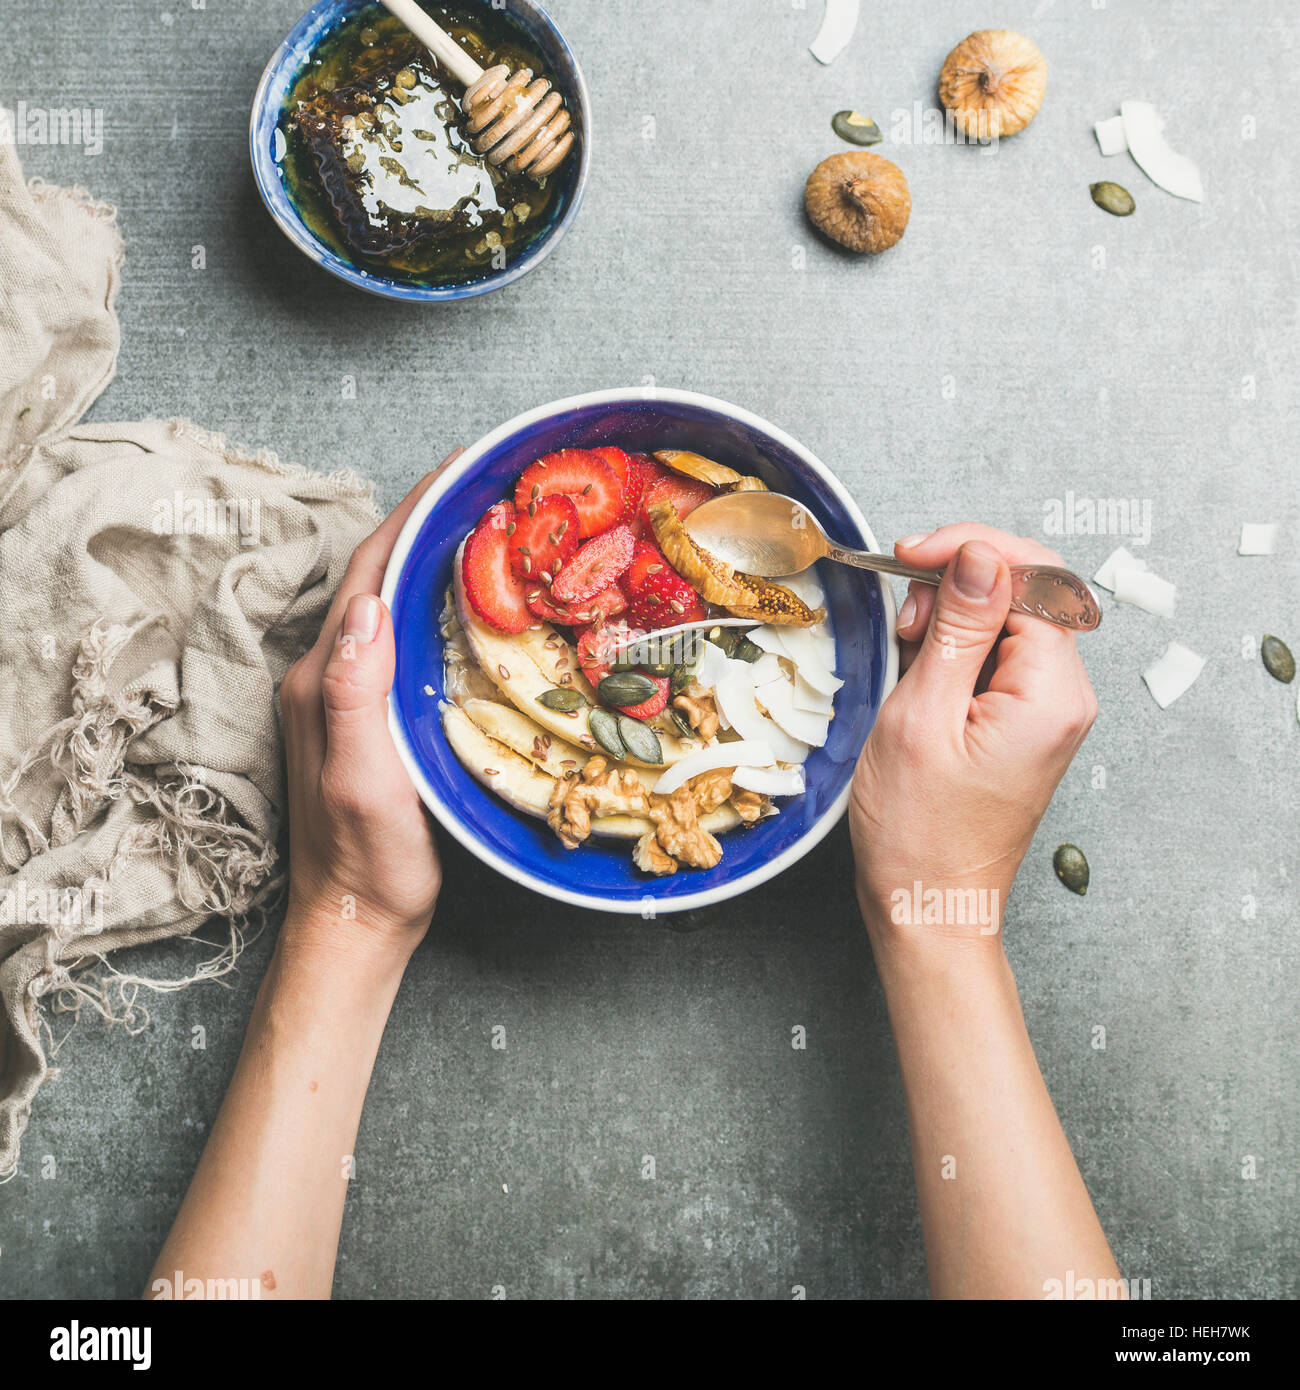 Yogurt, granola, seeds, fresh and dry fruit and honey in blue ceramic bowl in woman' s hands over grey concrete - Stock Image